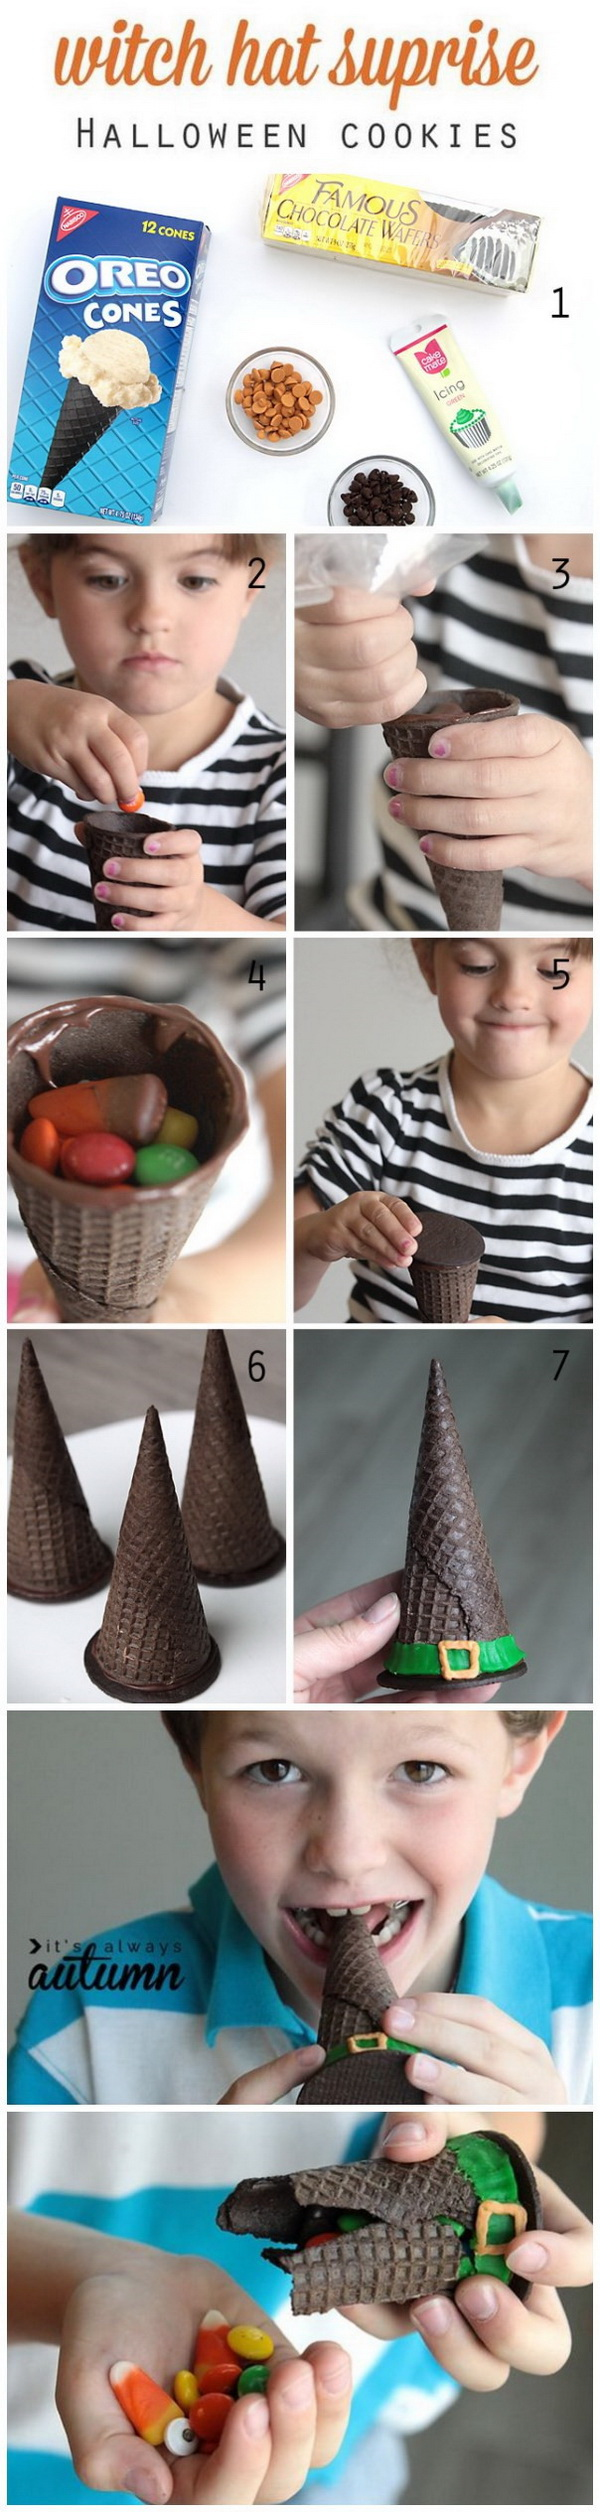 Witch Hat Surprise Cookies. These little cute witch hat surprise cookies are easy to make with an ice cream cone and a chocolate wafer and then filled with Halloween treats. What a fun and easy idea to do with the kids!